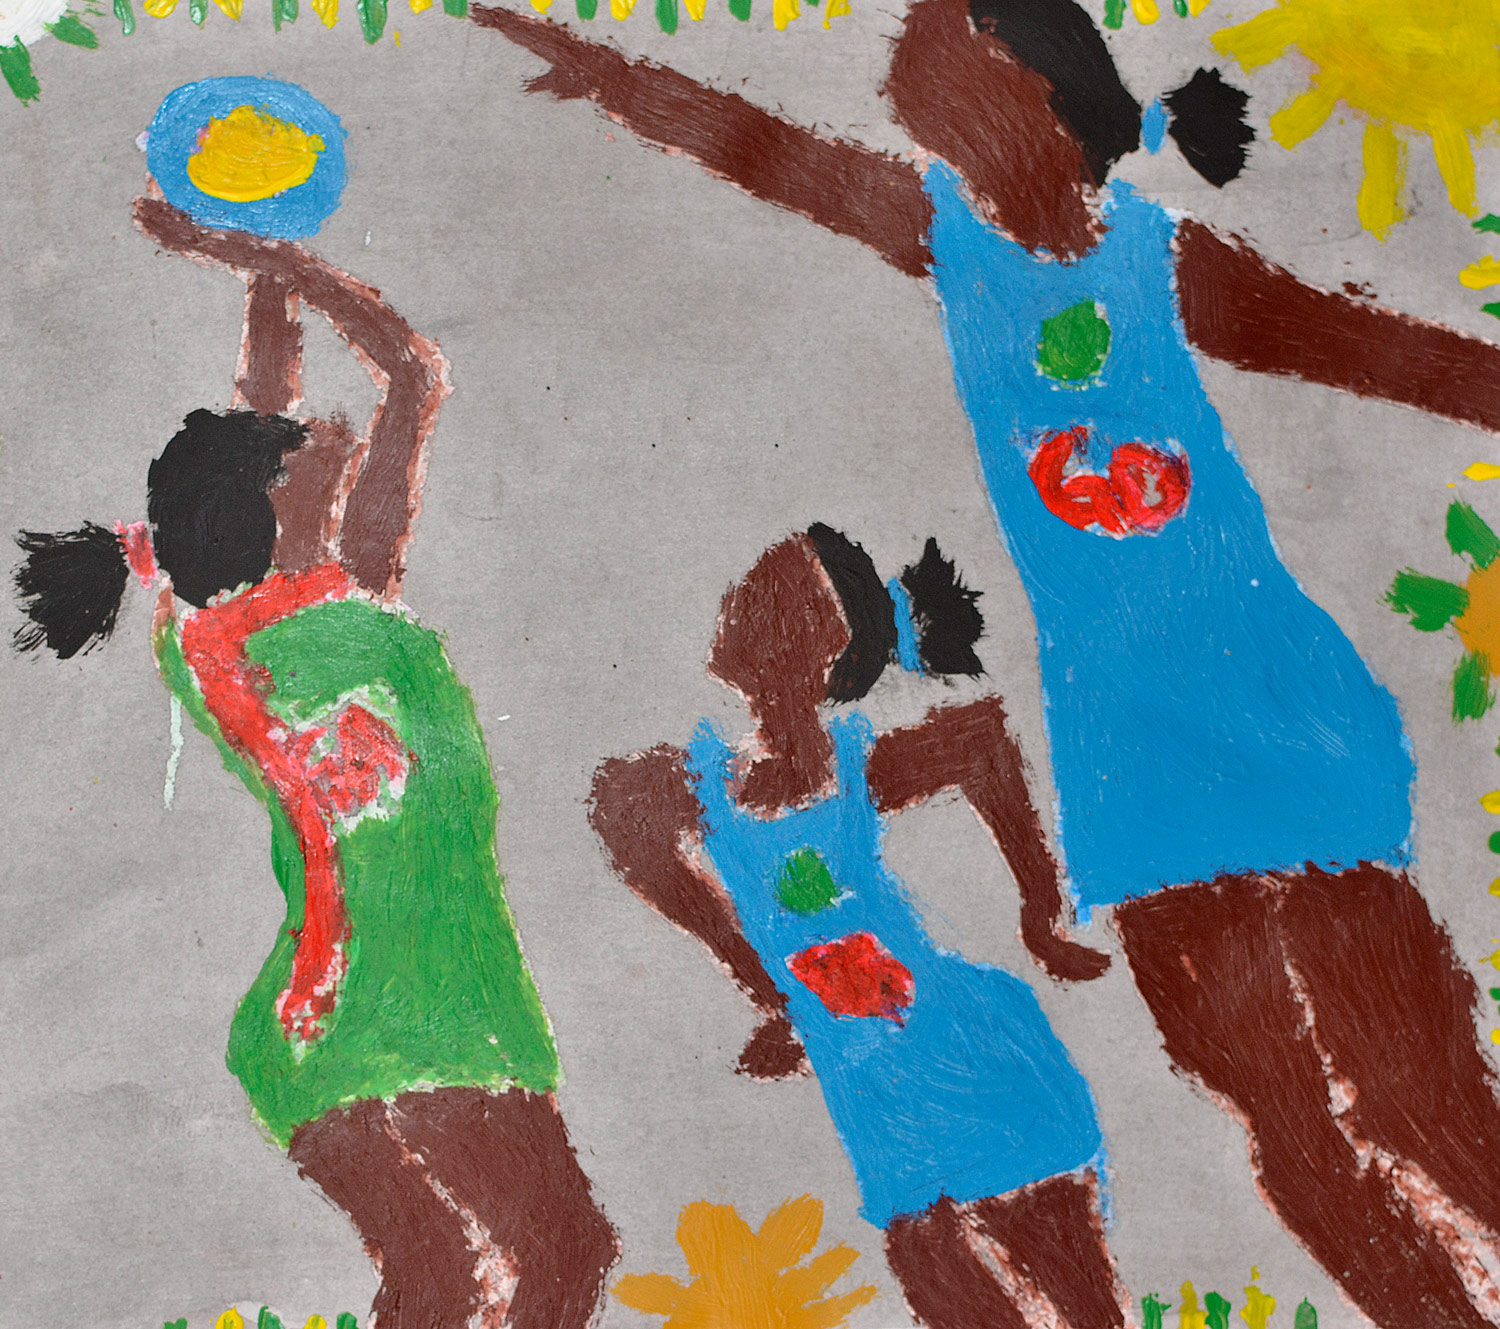 Artwork by a Mnyakanya High School student